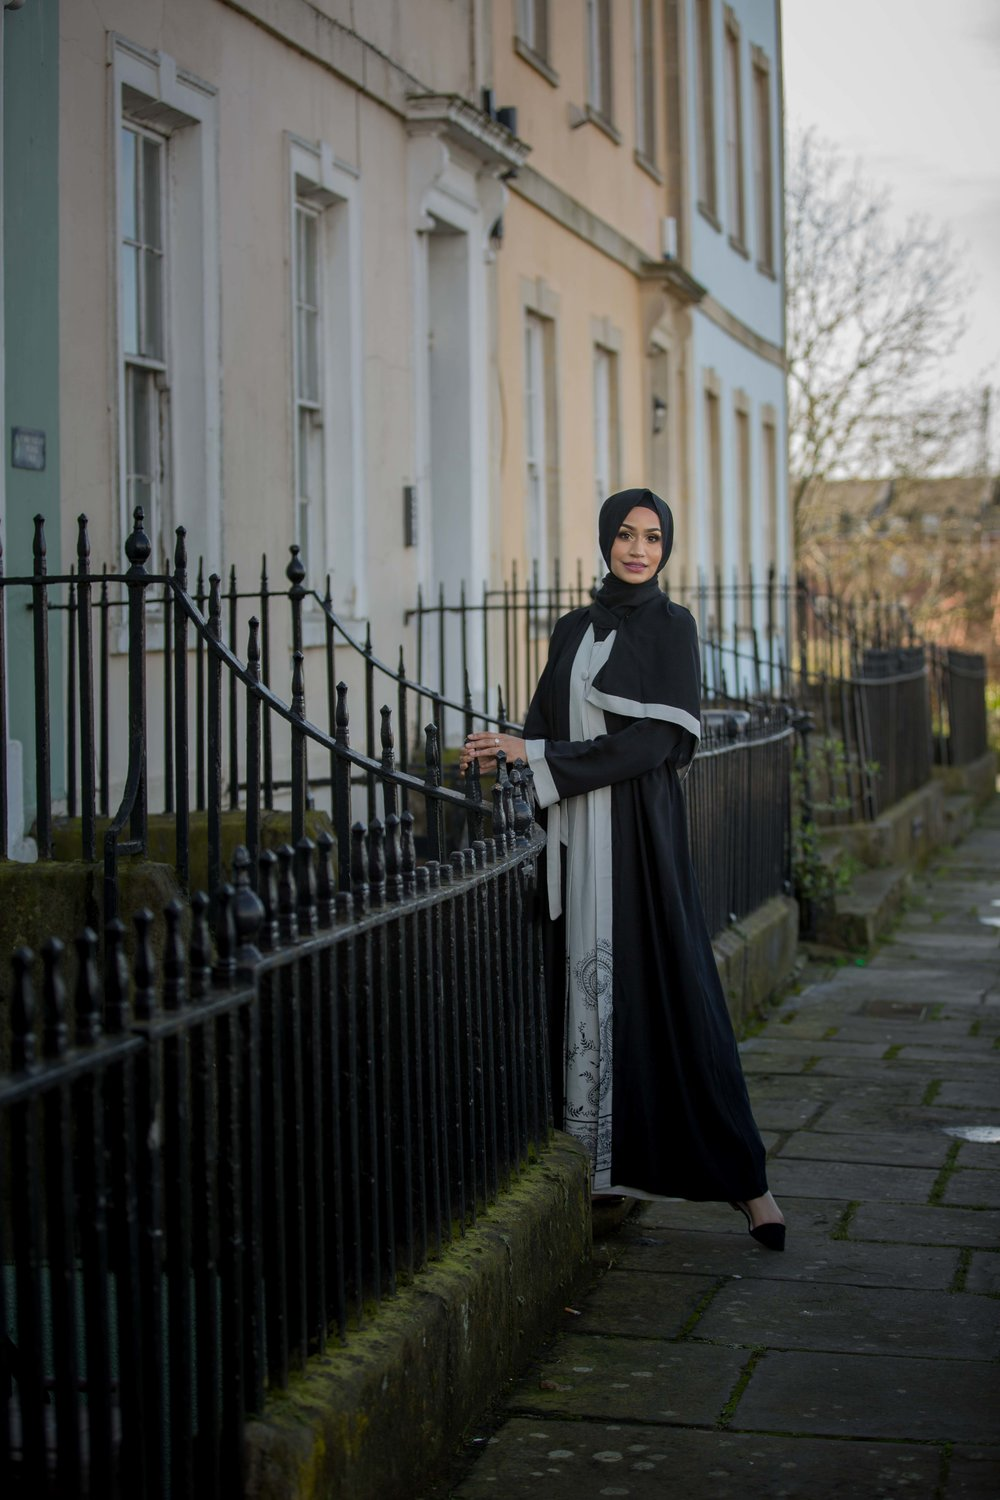 modest-street-aisha-rahman-fashion-photography-london-bristol-natalia-smith-photography-5.jpg